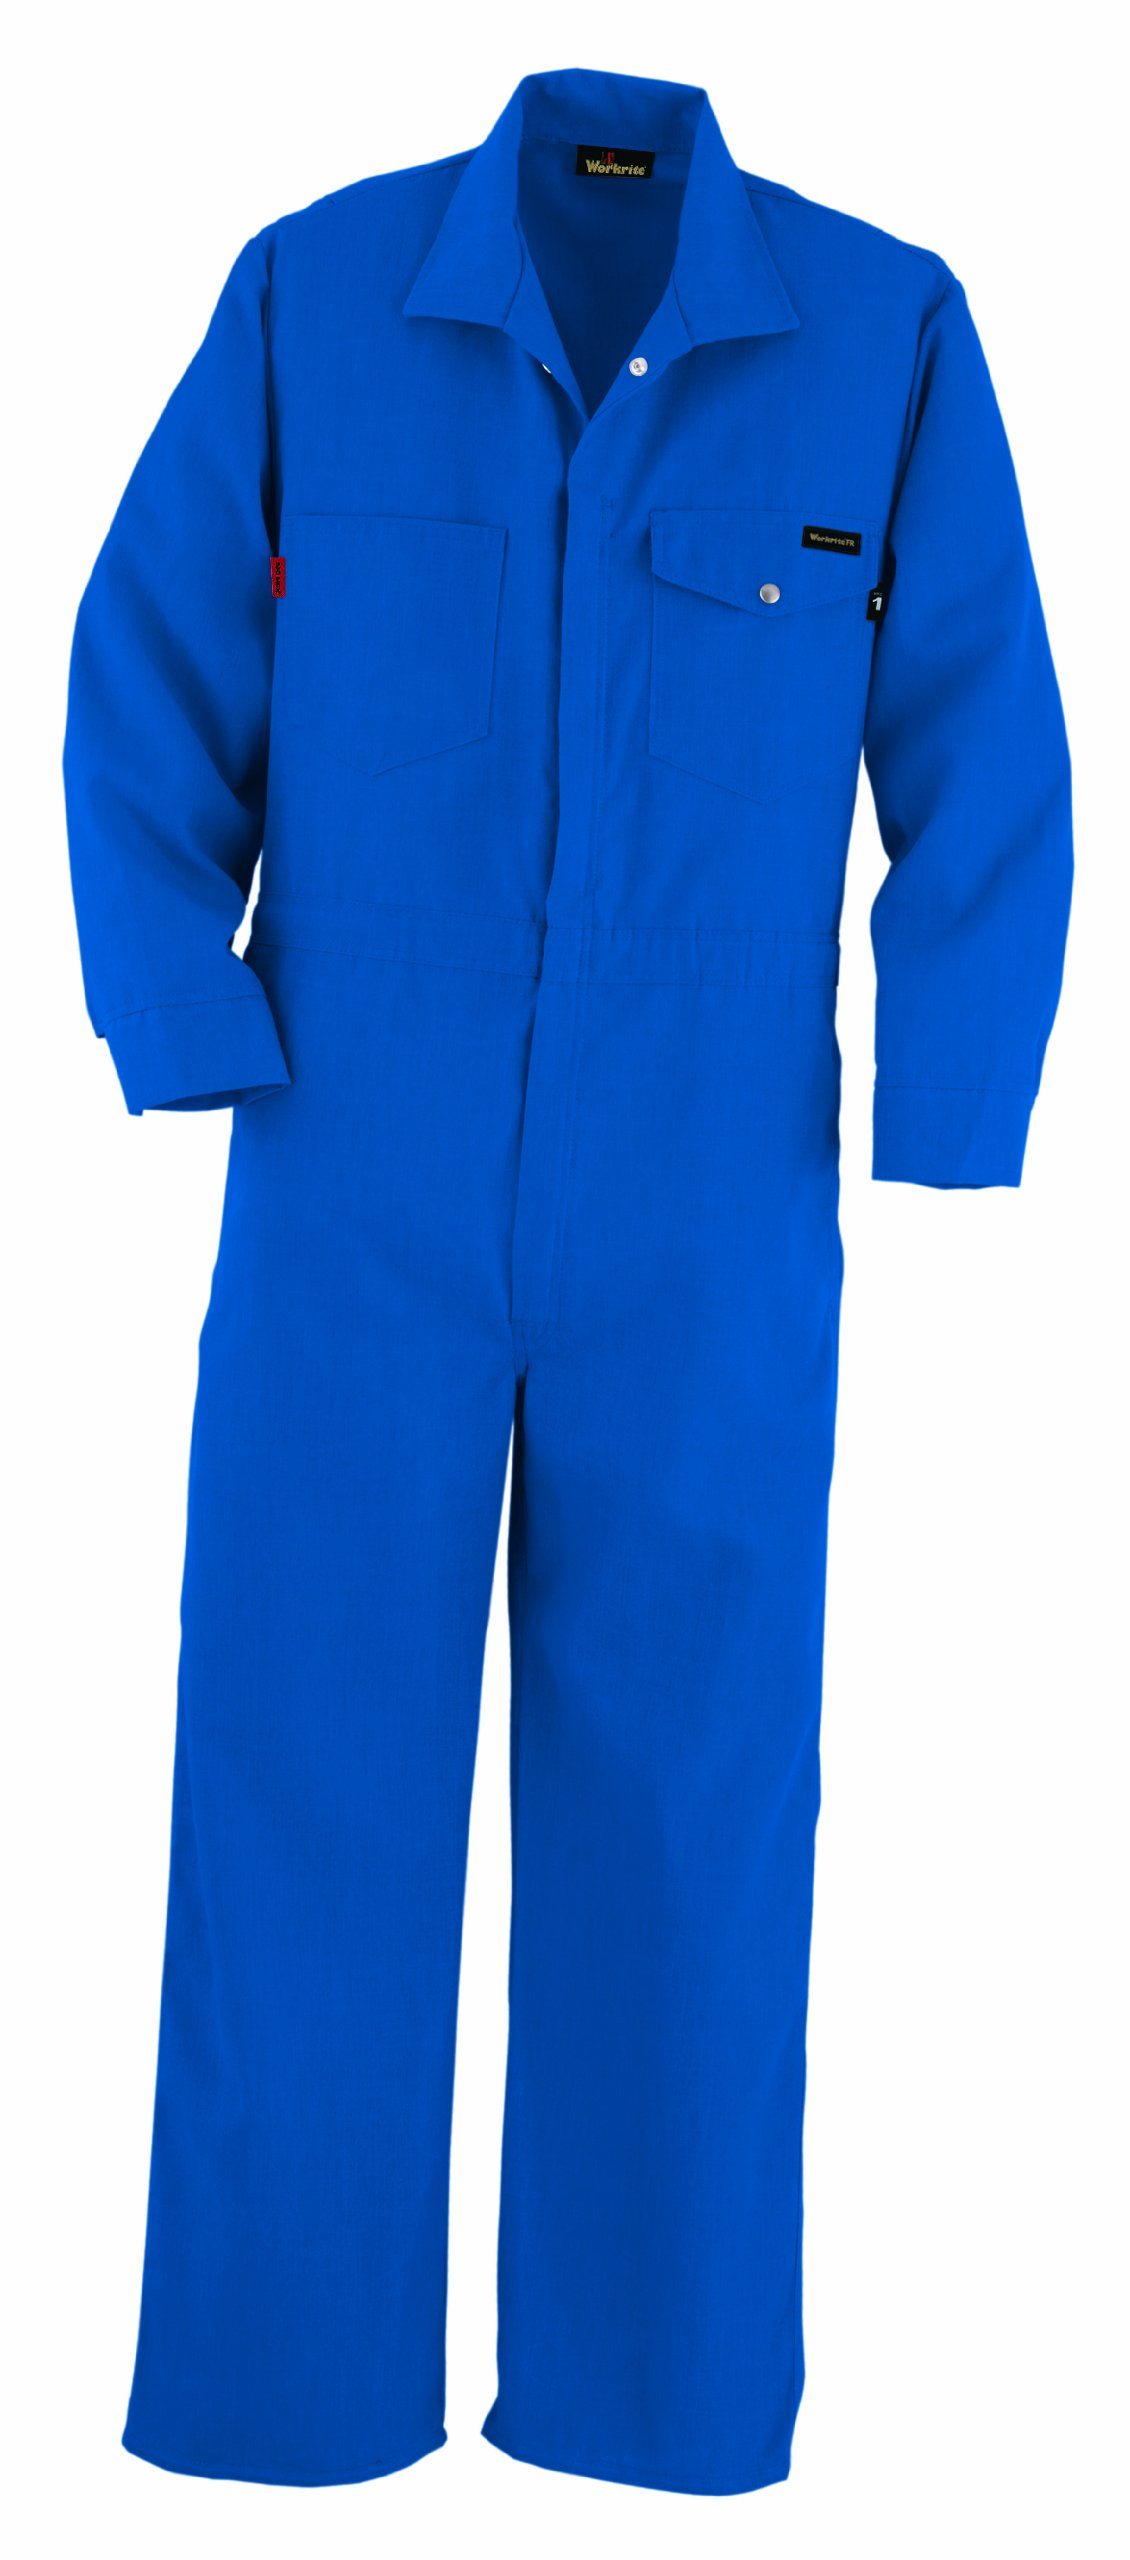 Workrite Flame Resistant 4.5 oz Nomex IIIA Industrial Coverall, Snap Wrist, 38 Chest Size, Short Length, Royal Blue